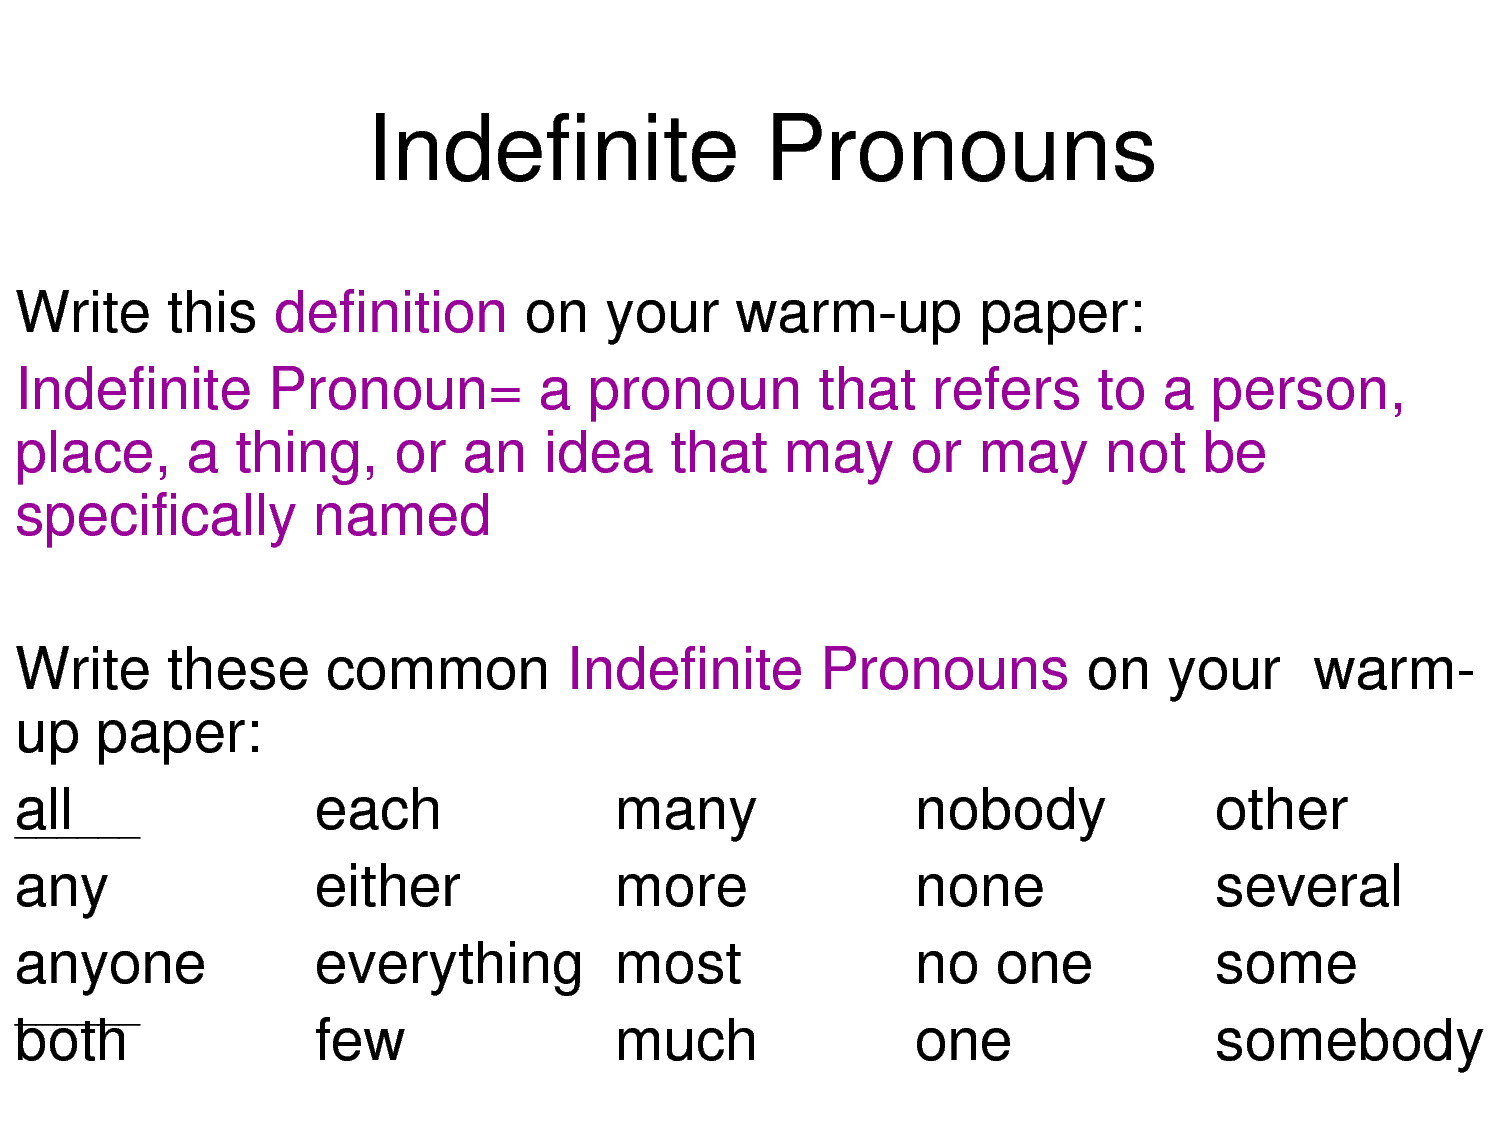 Worksheet An Indefinite Pronoun worksheet an indefinite pronoun mikyu free english grammar march 2012 demostrative pronouns